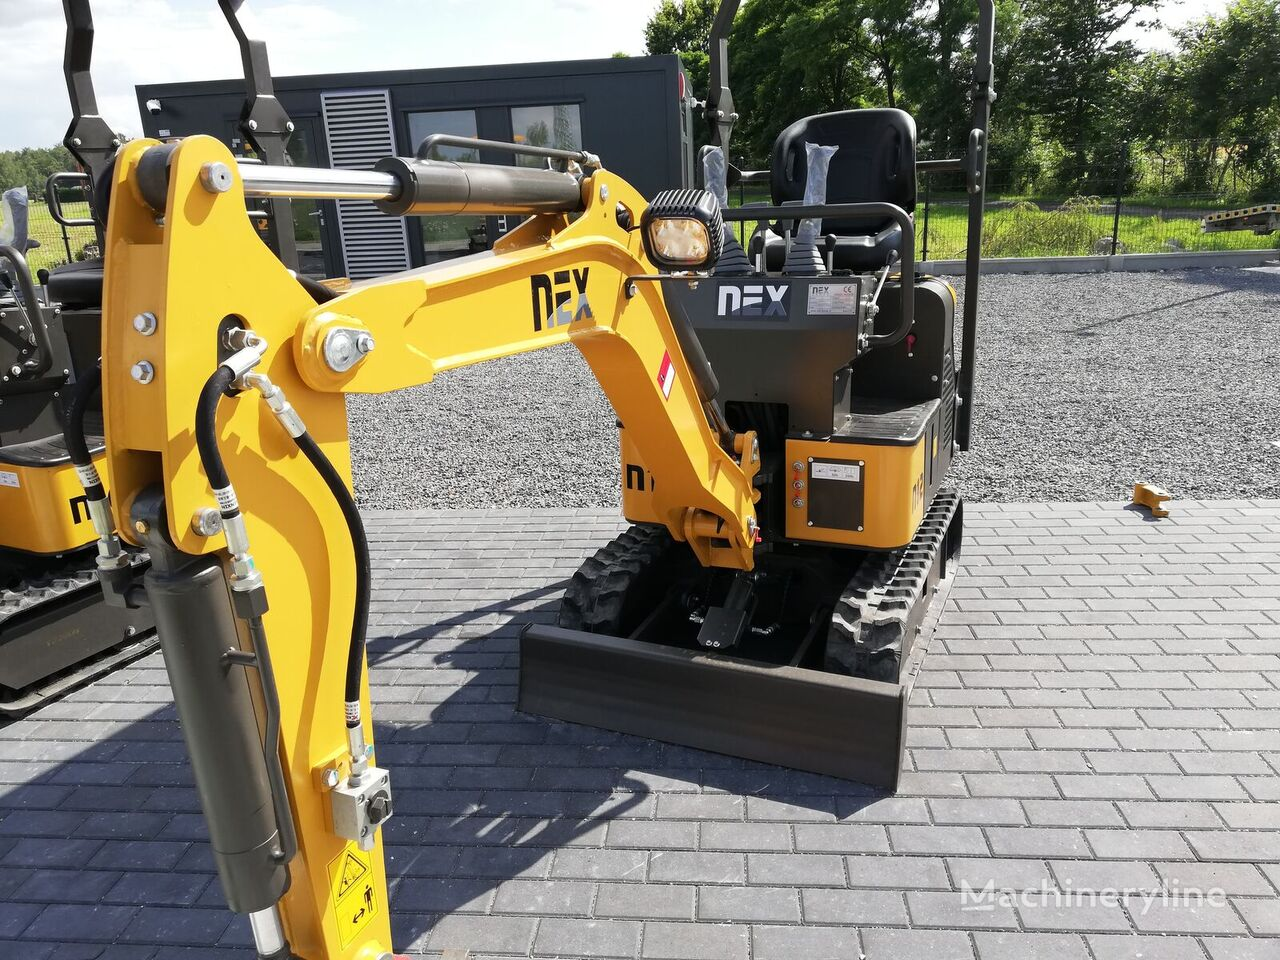 new NEX N12 Yanmar swing arm mini excavator